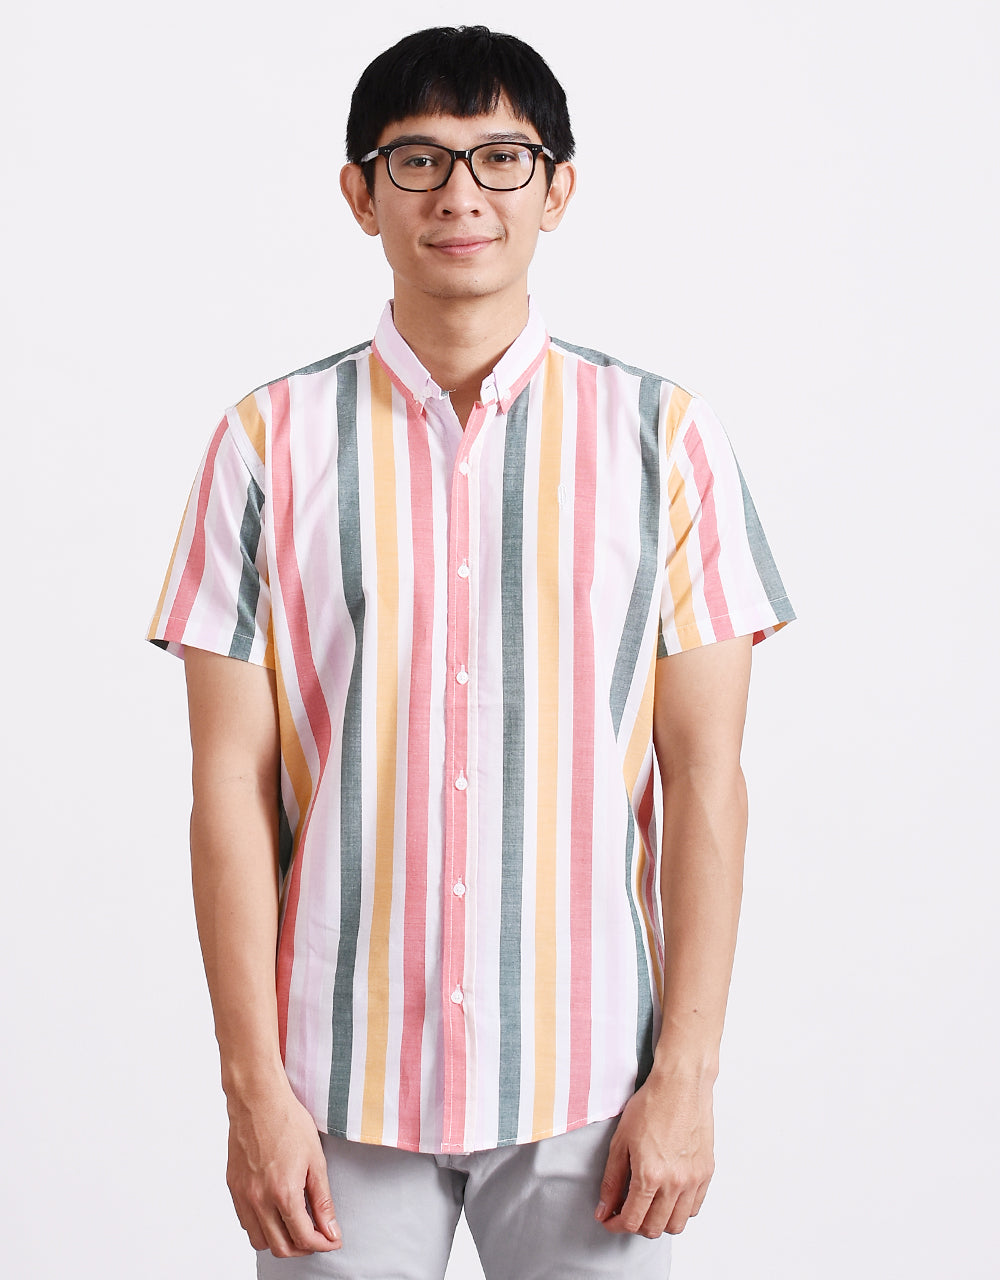 Decouleur Printed Shirt